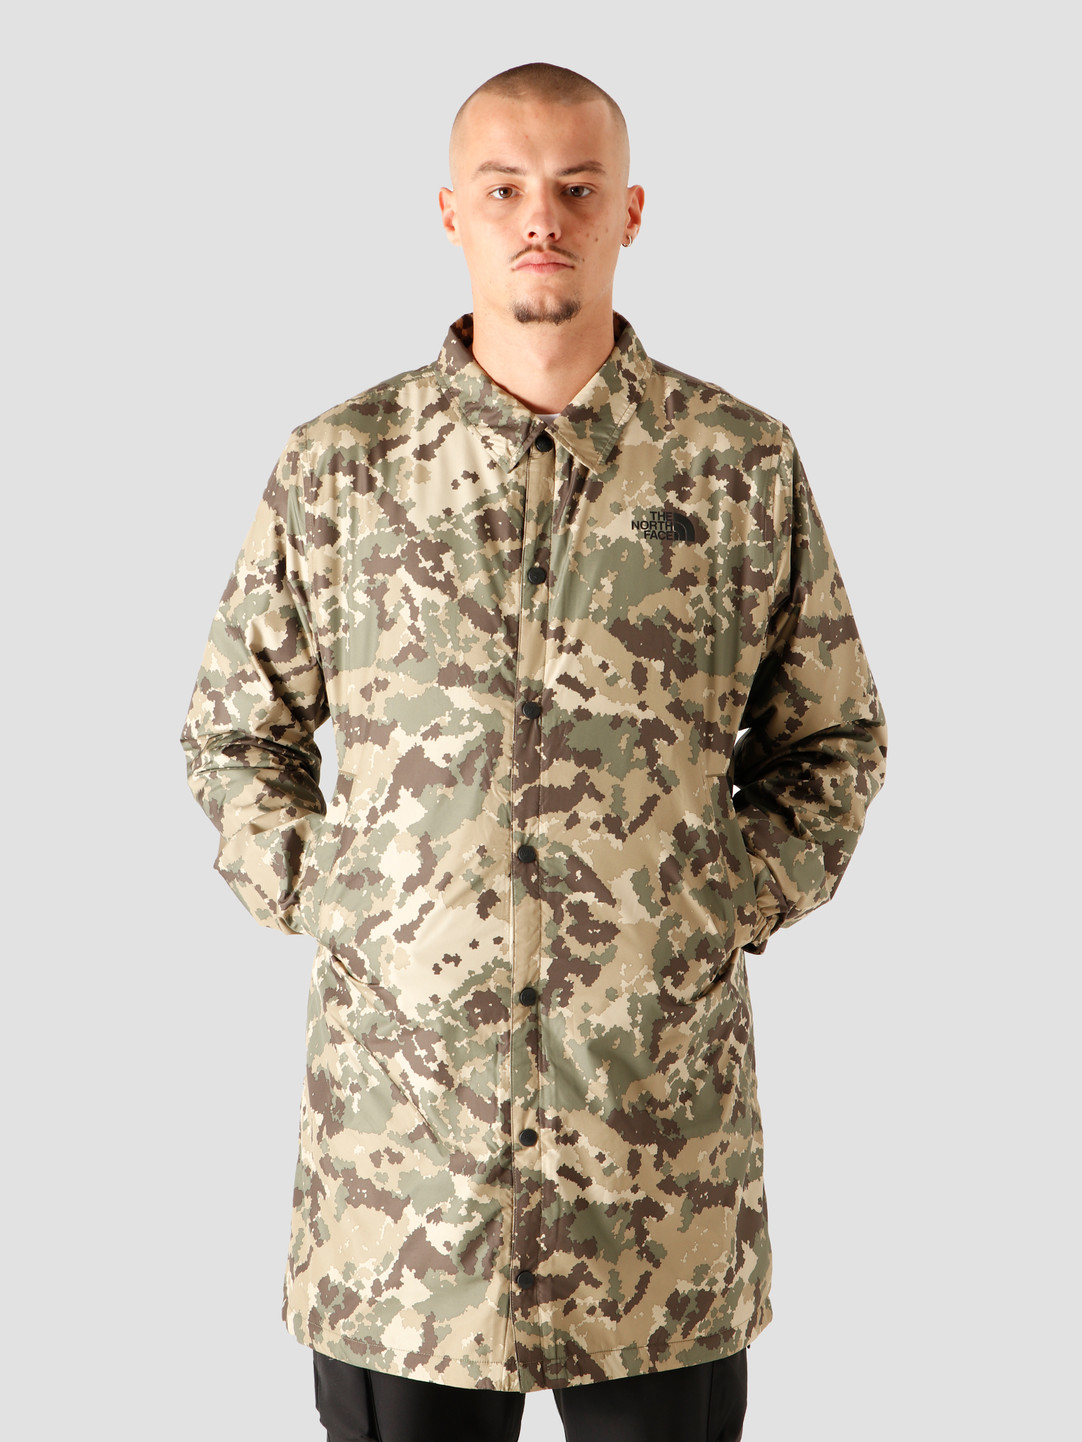 The North Face The North Face Telegraphic Coach Jacket Burnt Olive Green Digital Camo Print NF0A4SWLSX1